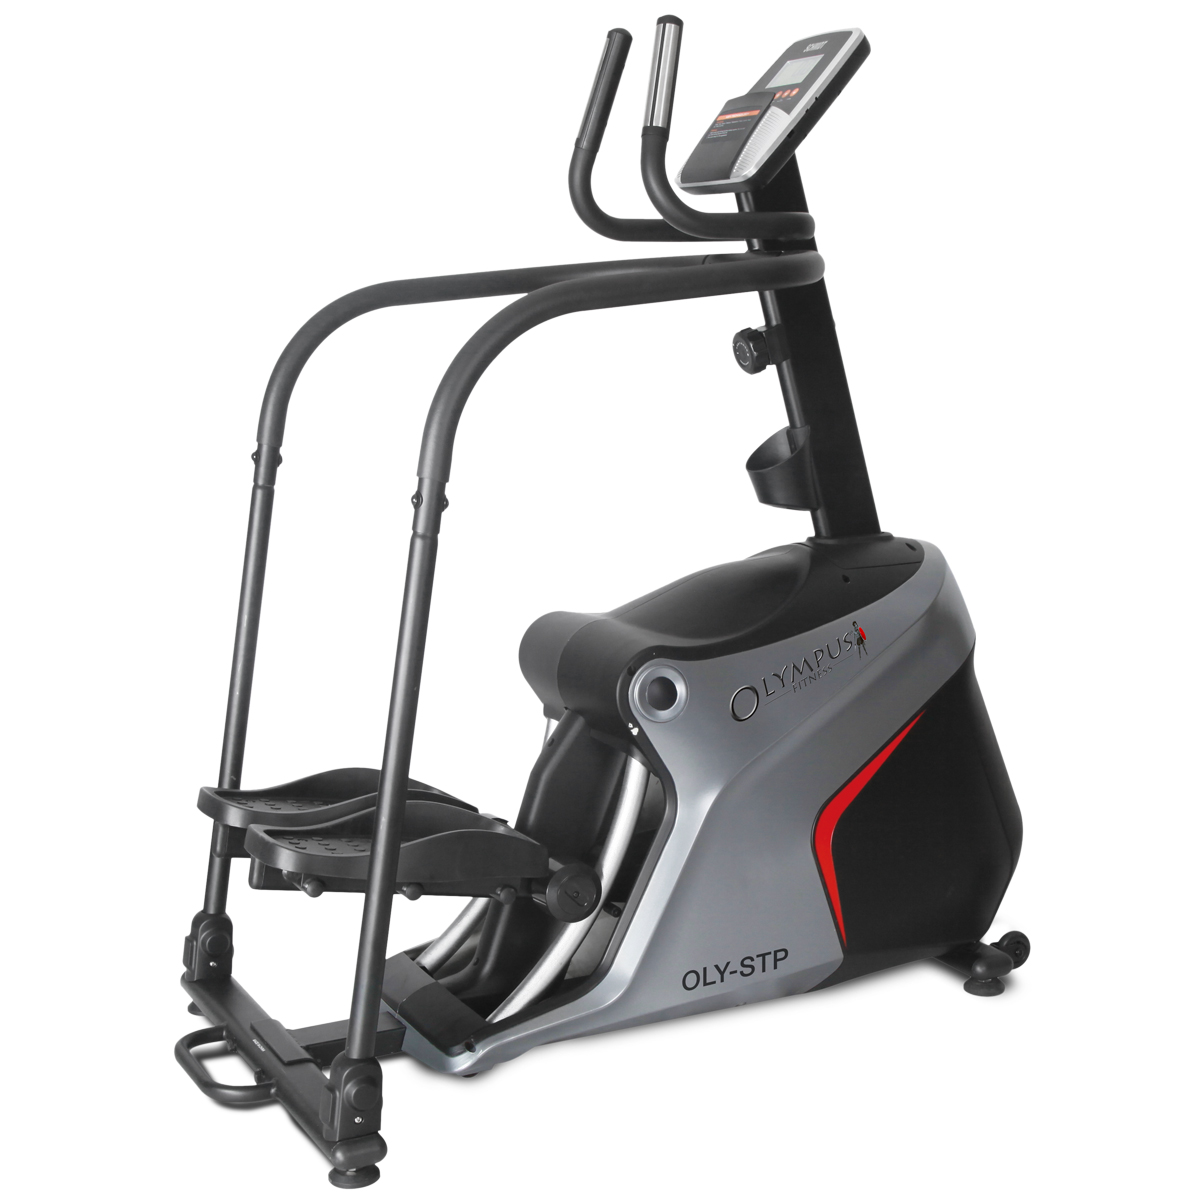 STEPPER COMMERCIAL OLYMPUS by Renouf Fitness